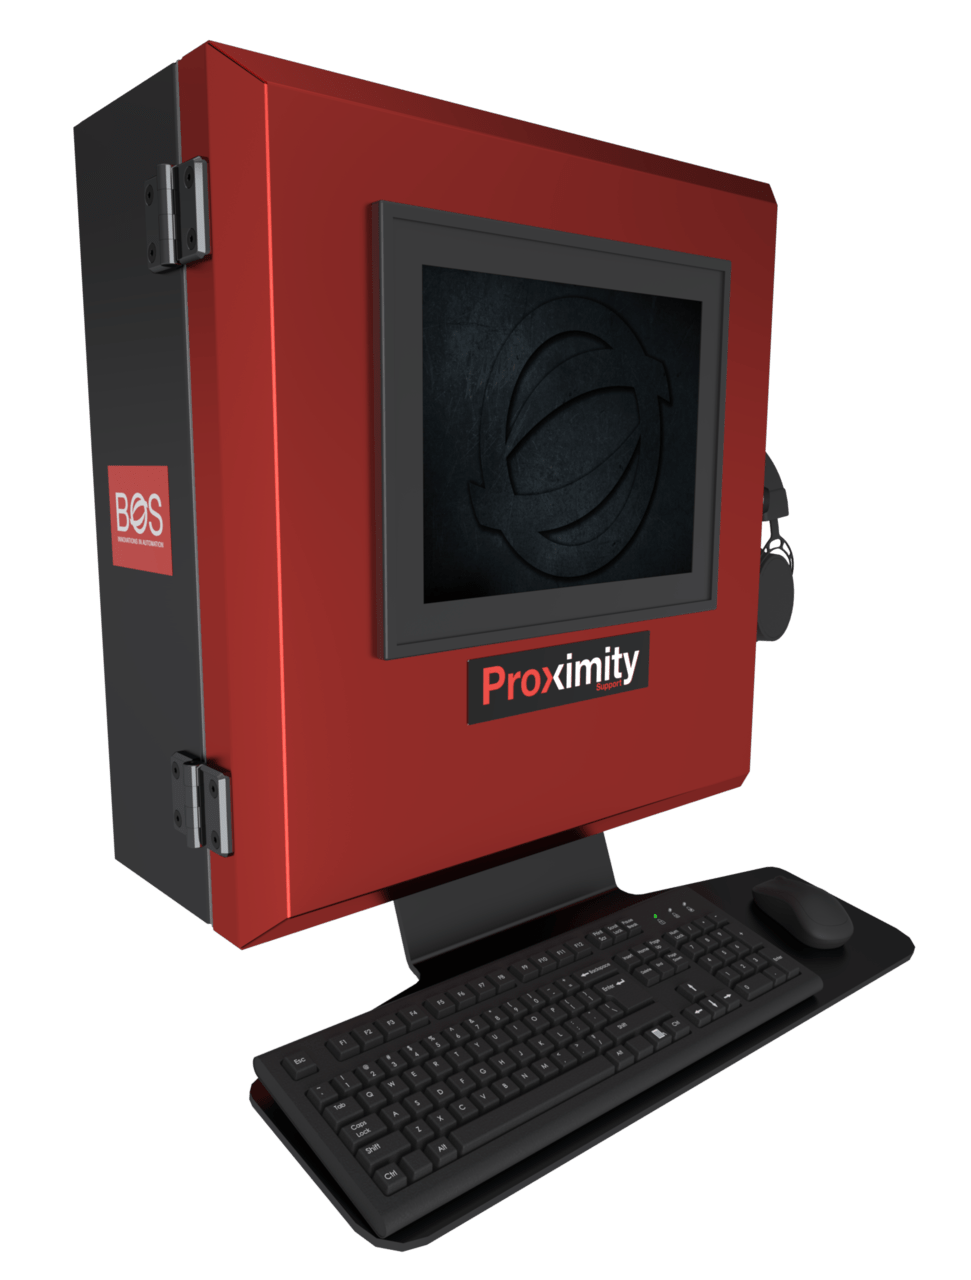 3D model of the Proximity Support Panel